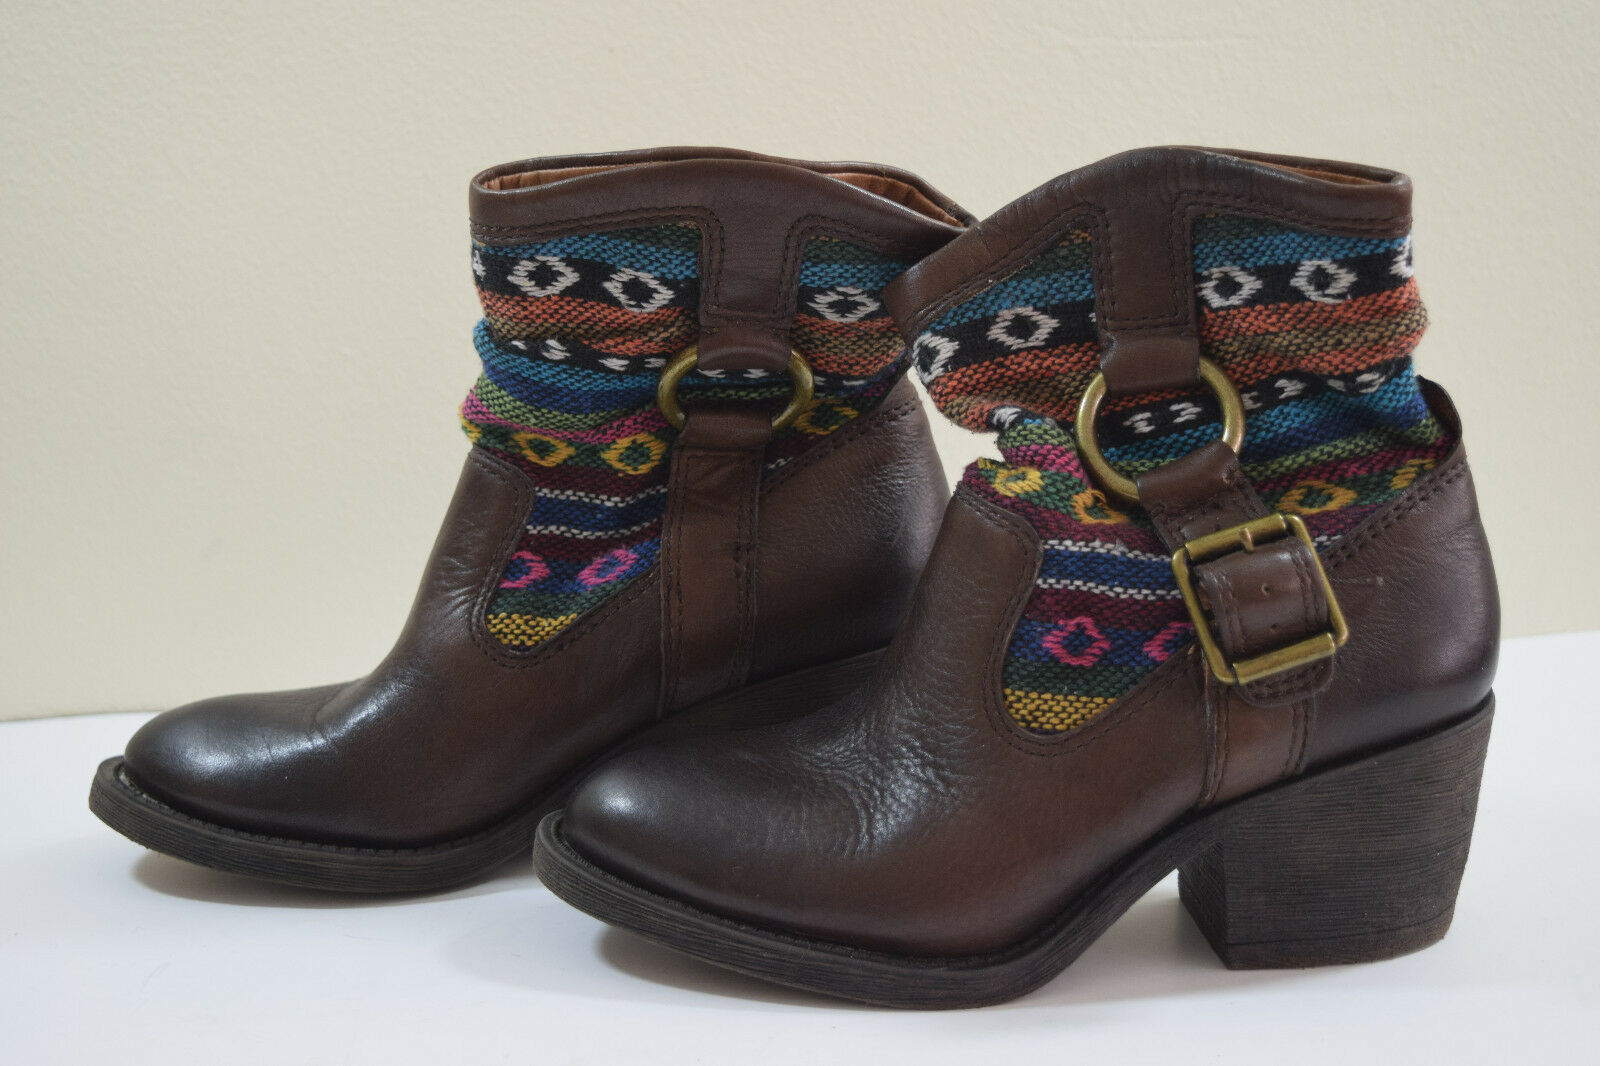 LUCKY BRAND WOMEN BOOTS 5.5 M LEATHER COWBOY BOOTIES AZTEC NAVAJO WESTERN